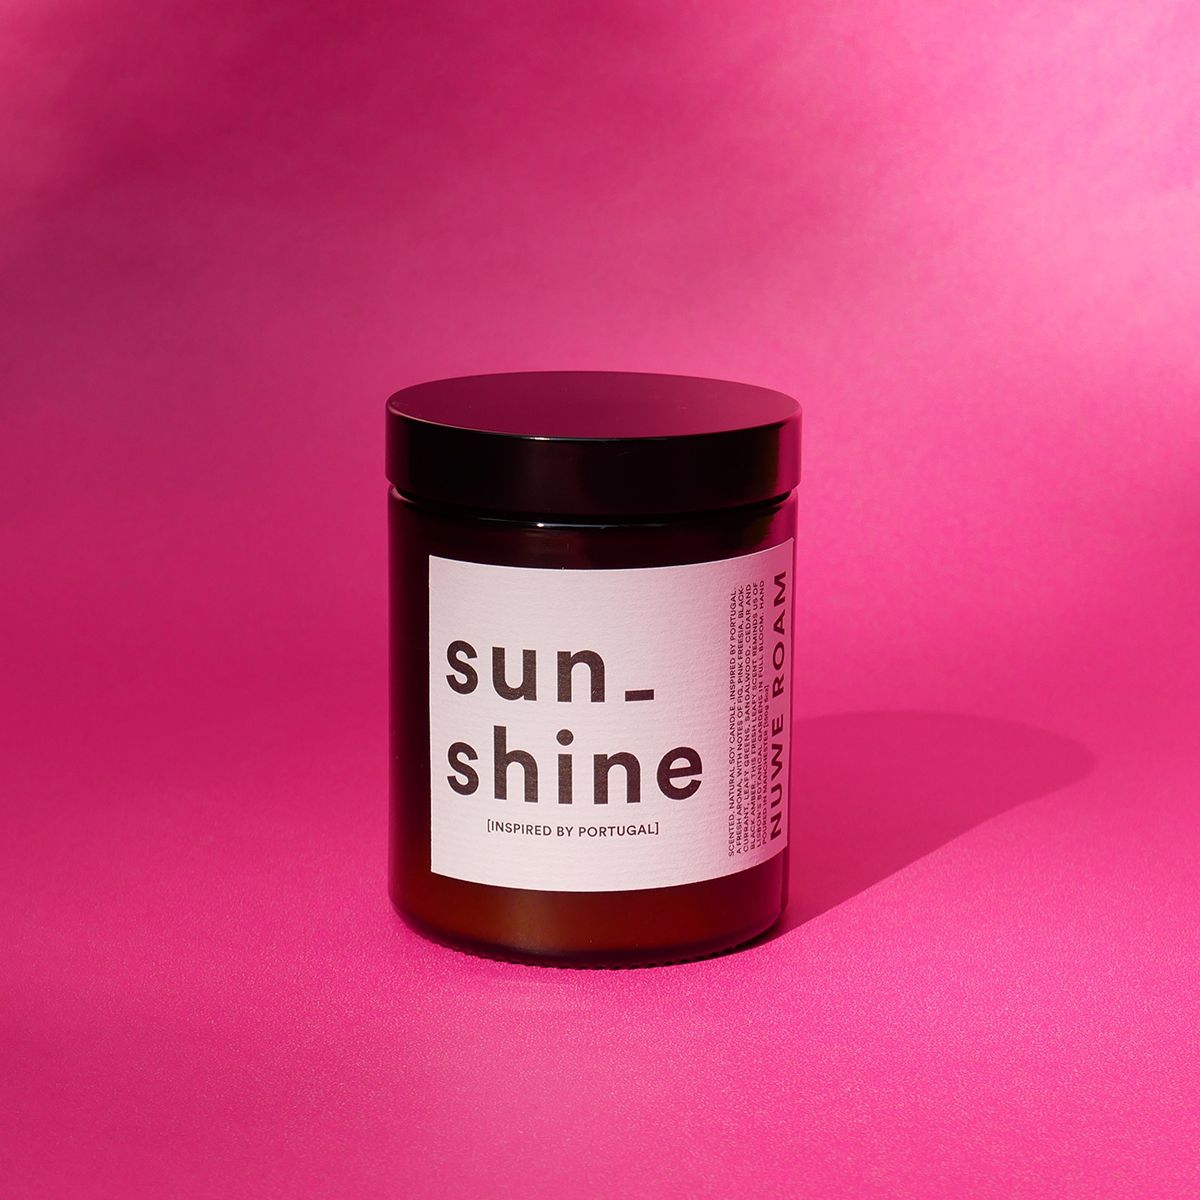 'SUNSHINE' FIG SCENTED CANDLE